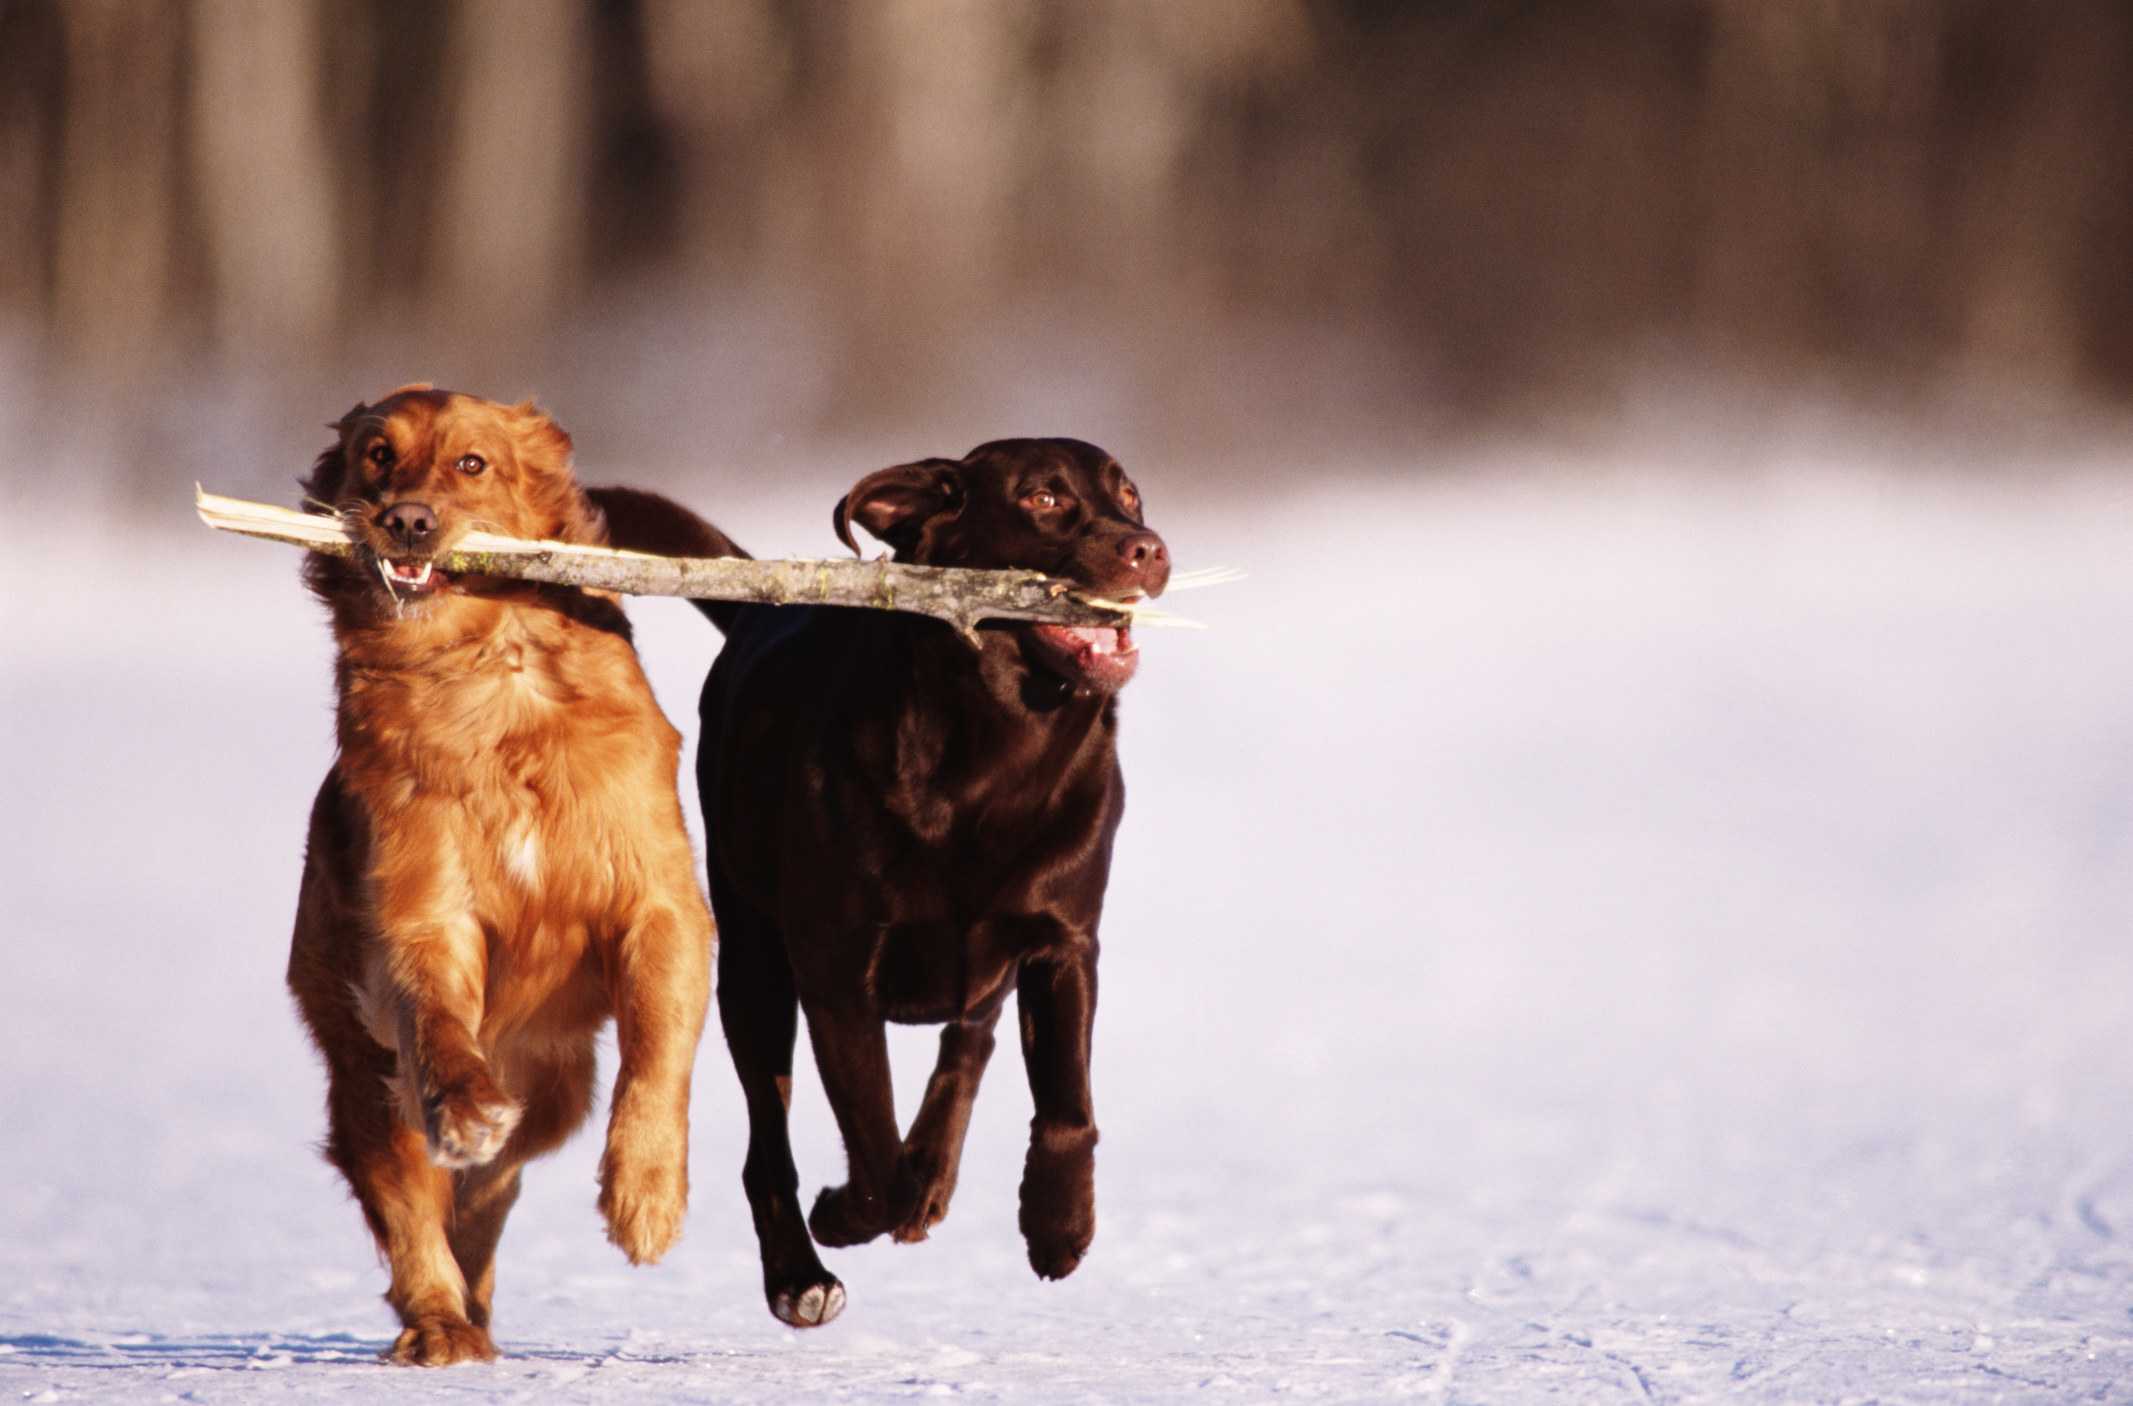 Two dogs running with stick in their mouths.